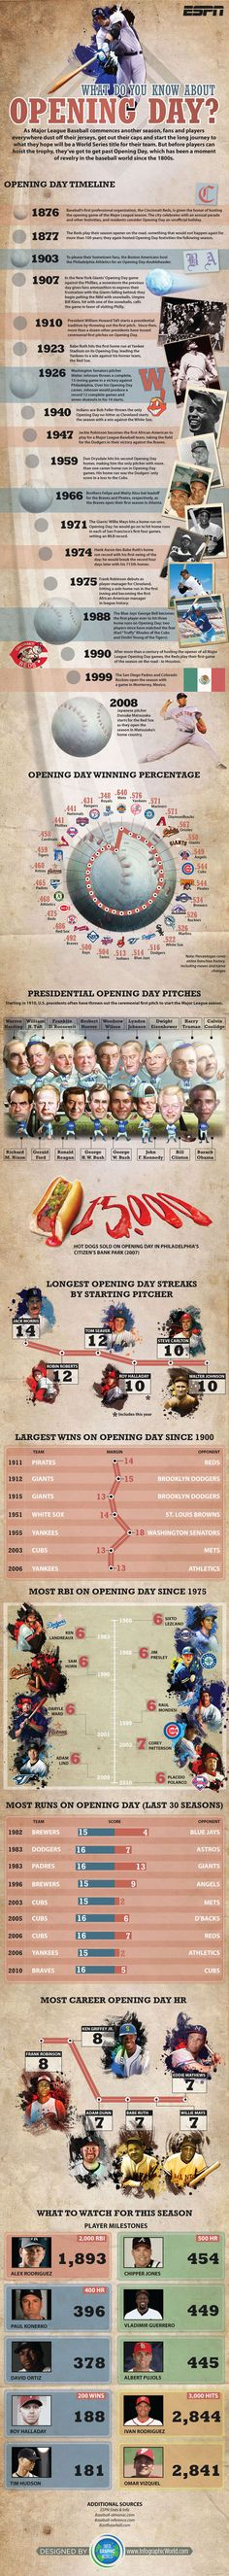 Take a trip through baseball history with our Ultimate MLB Opening Day Infographic - ESPN Baseball Quotes, Sports Baseball, Baseball Mom, Baseball Players, Baseball Stuff, Baseball Nails, Baseball Videos, Baseball Girlfriend, Rangers Baseball